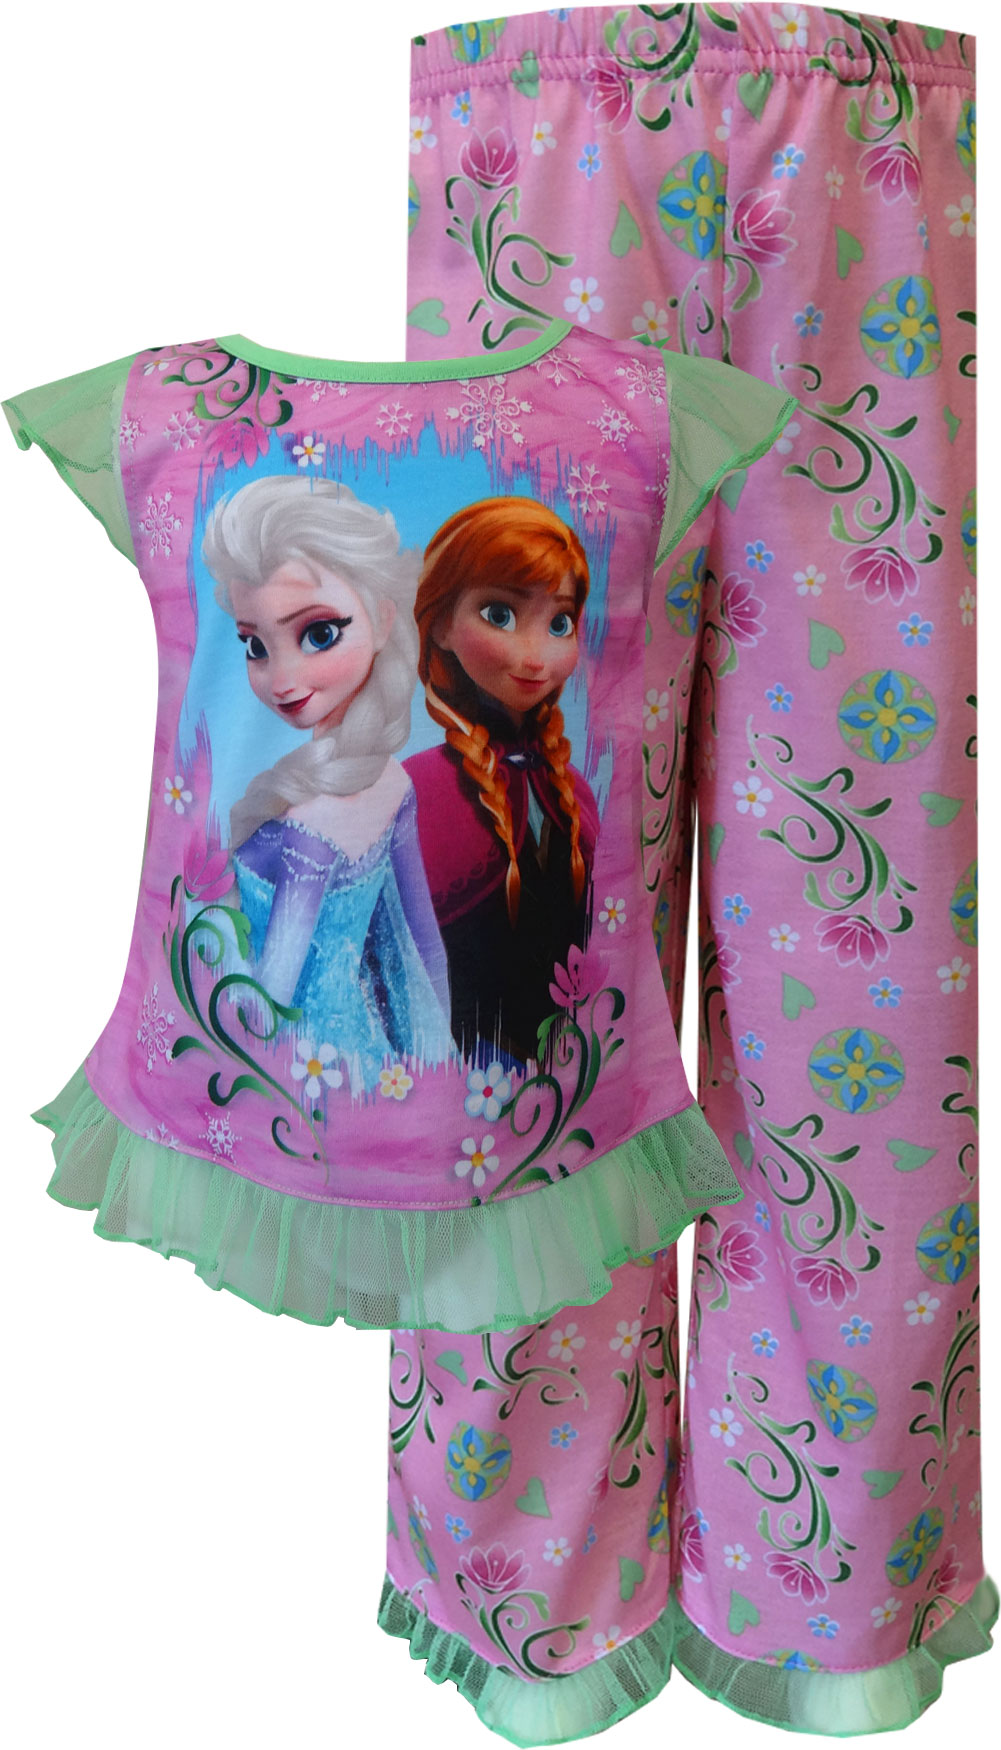 Image of Disney Frozen Princesses Elsa and Anna Spring Garden Toddler Pajama for girls